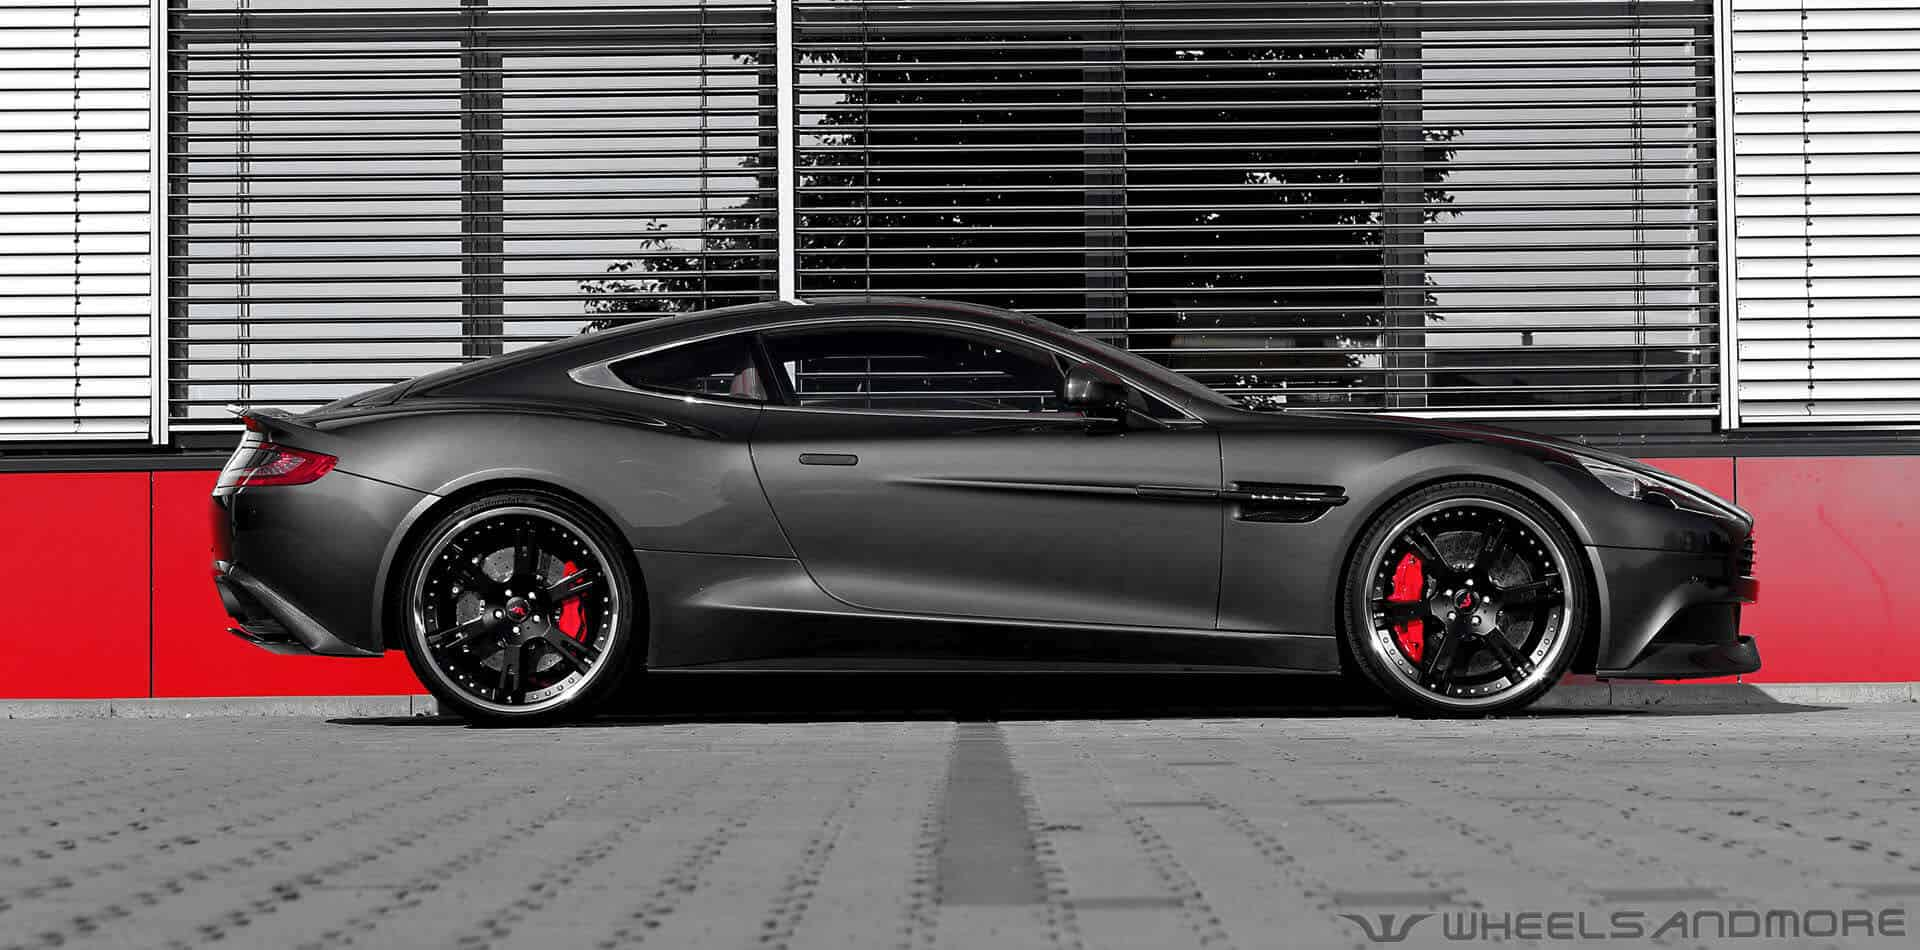 Aston Martin Vanquish Tuning With Wheels And Exhaust Wheelsandmore Wheelsandmore Tuning